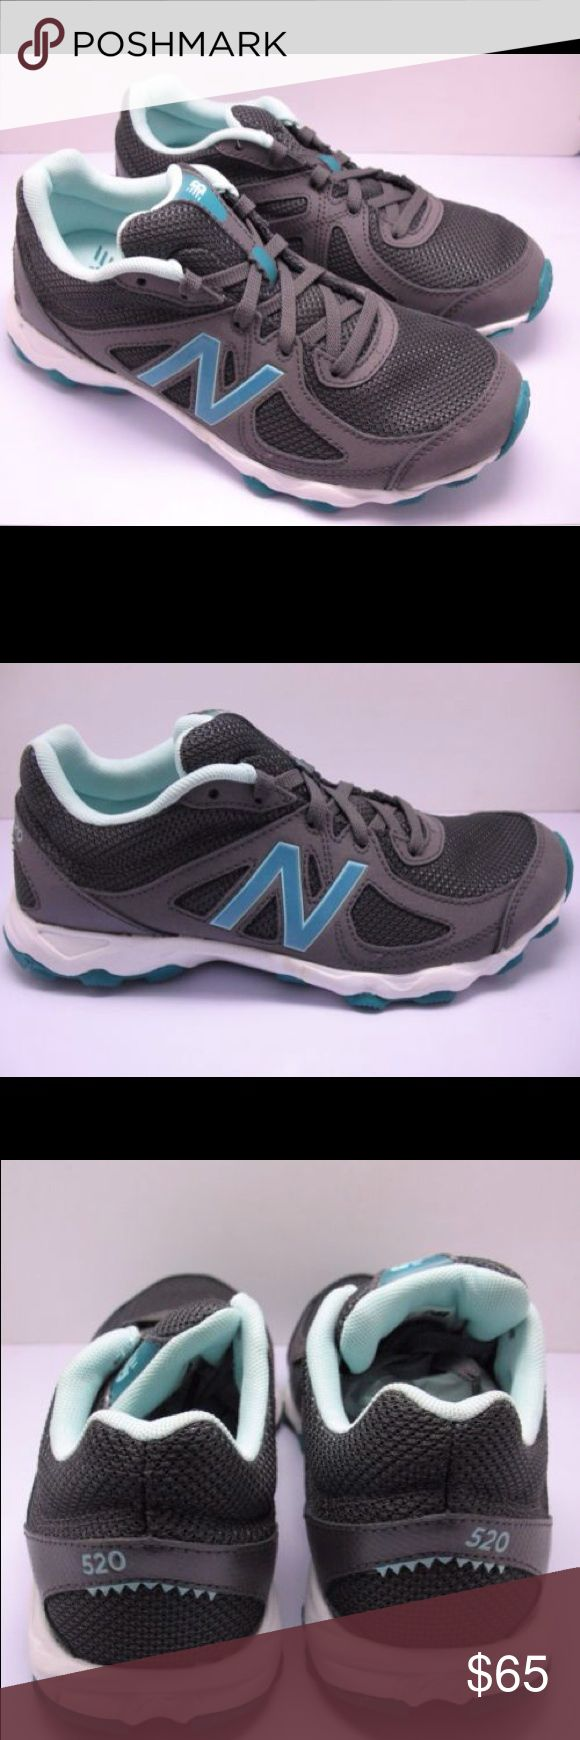 New Balance Women's 520 Athletic Shoes, NEW New Balance Women's 520 Athletic Shoes, Size 7 M, New without Box  Details: New Balance Size: 7 M Color: Dark Gray/Turquoise  Mesh synthetic Upper Man made sole New Balance Shoes Athletic Shoes